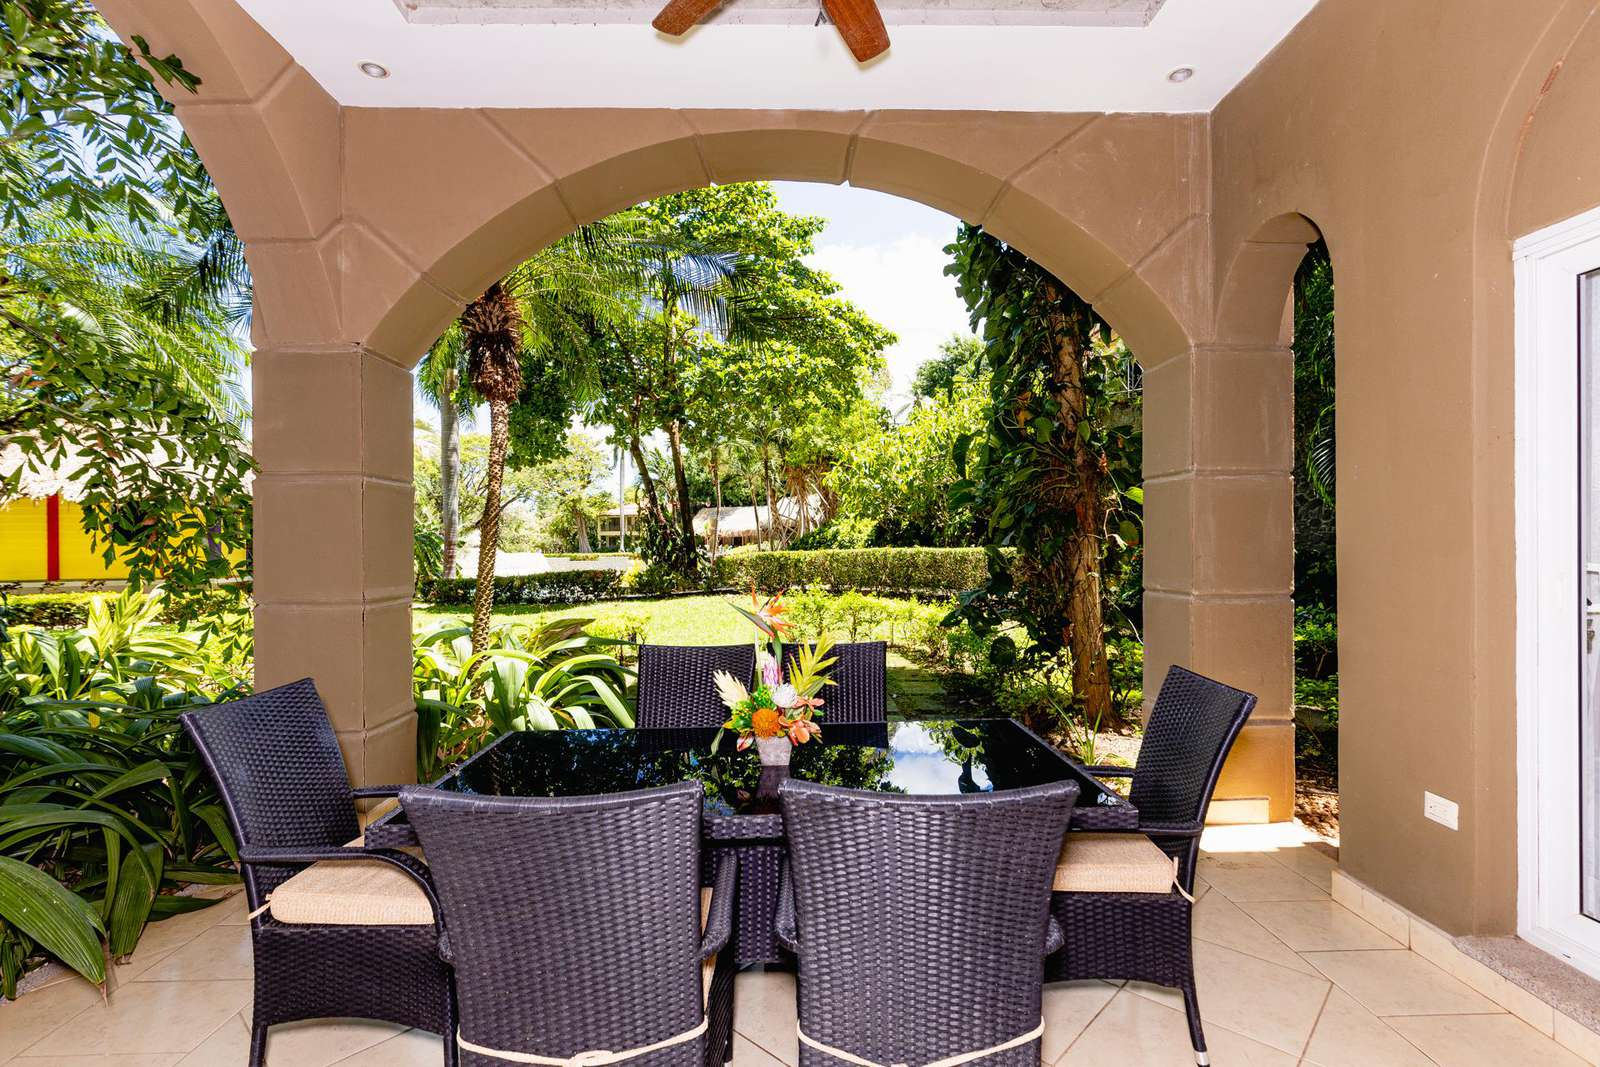 Private covered terrace area with dining for 6